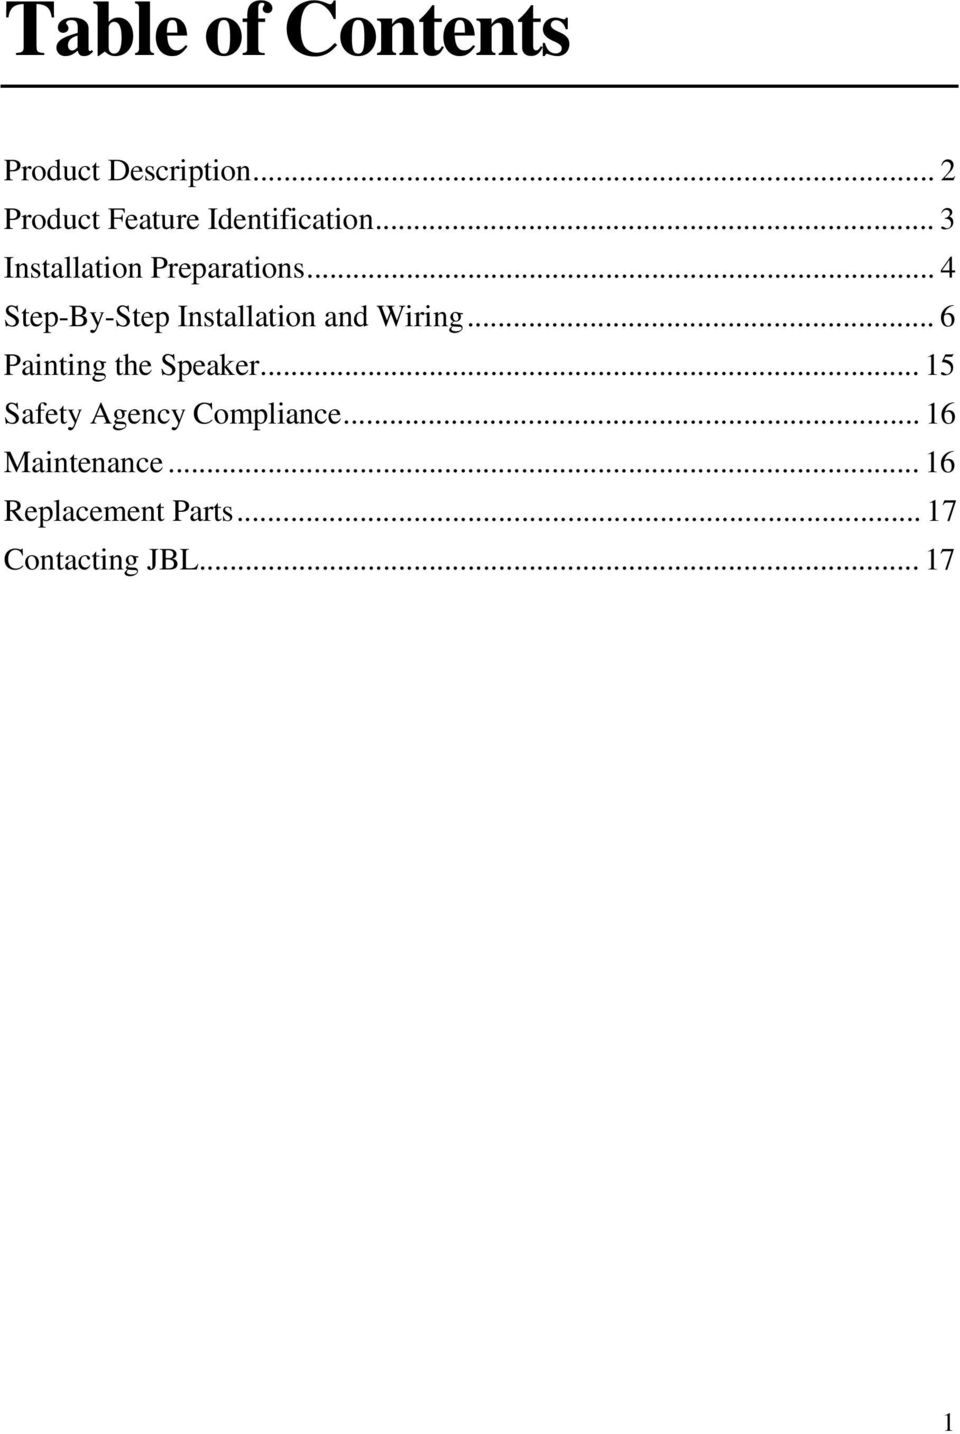 Control Contractor Ceiling Loudspeakers Owner S Manual Pdf